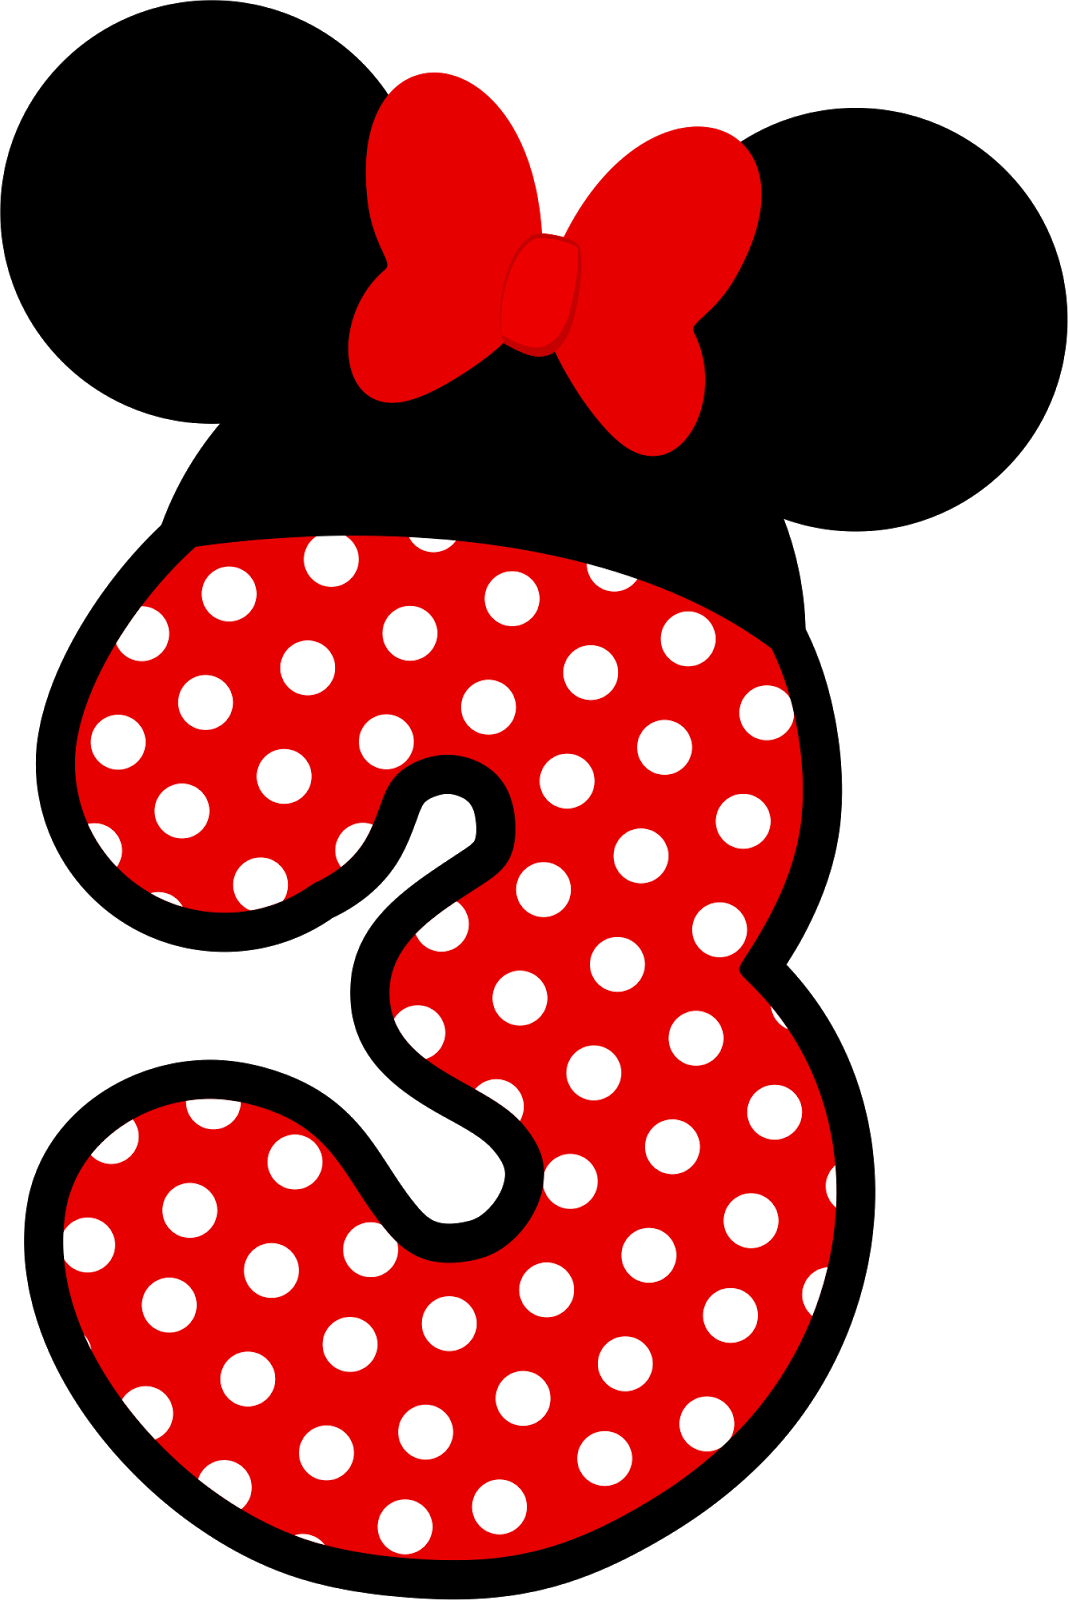 Minnie mouse background polka dots png. Kit festa pronta gr